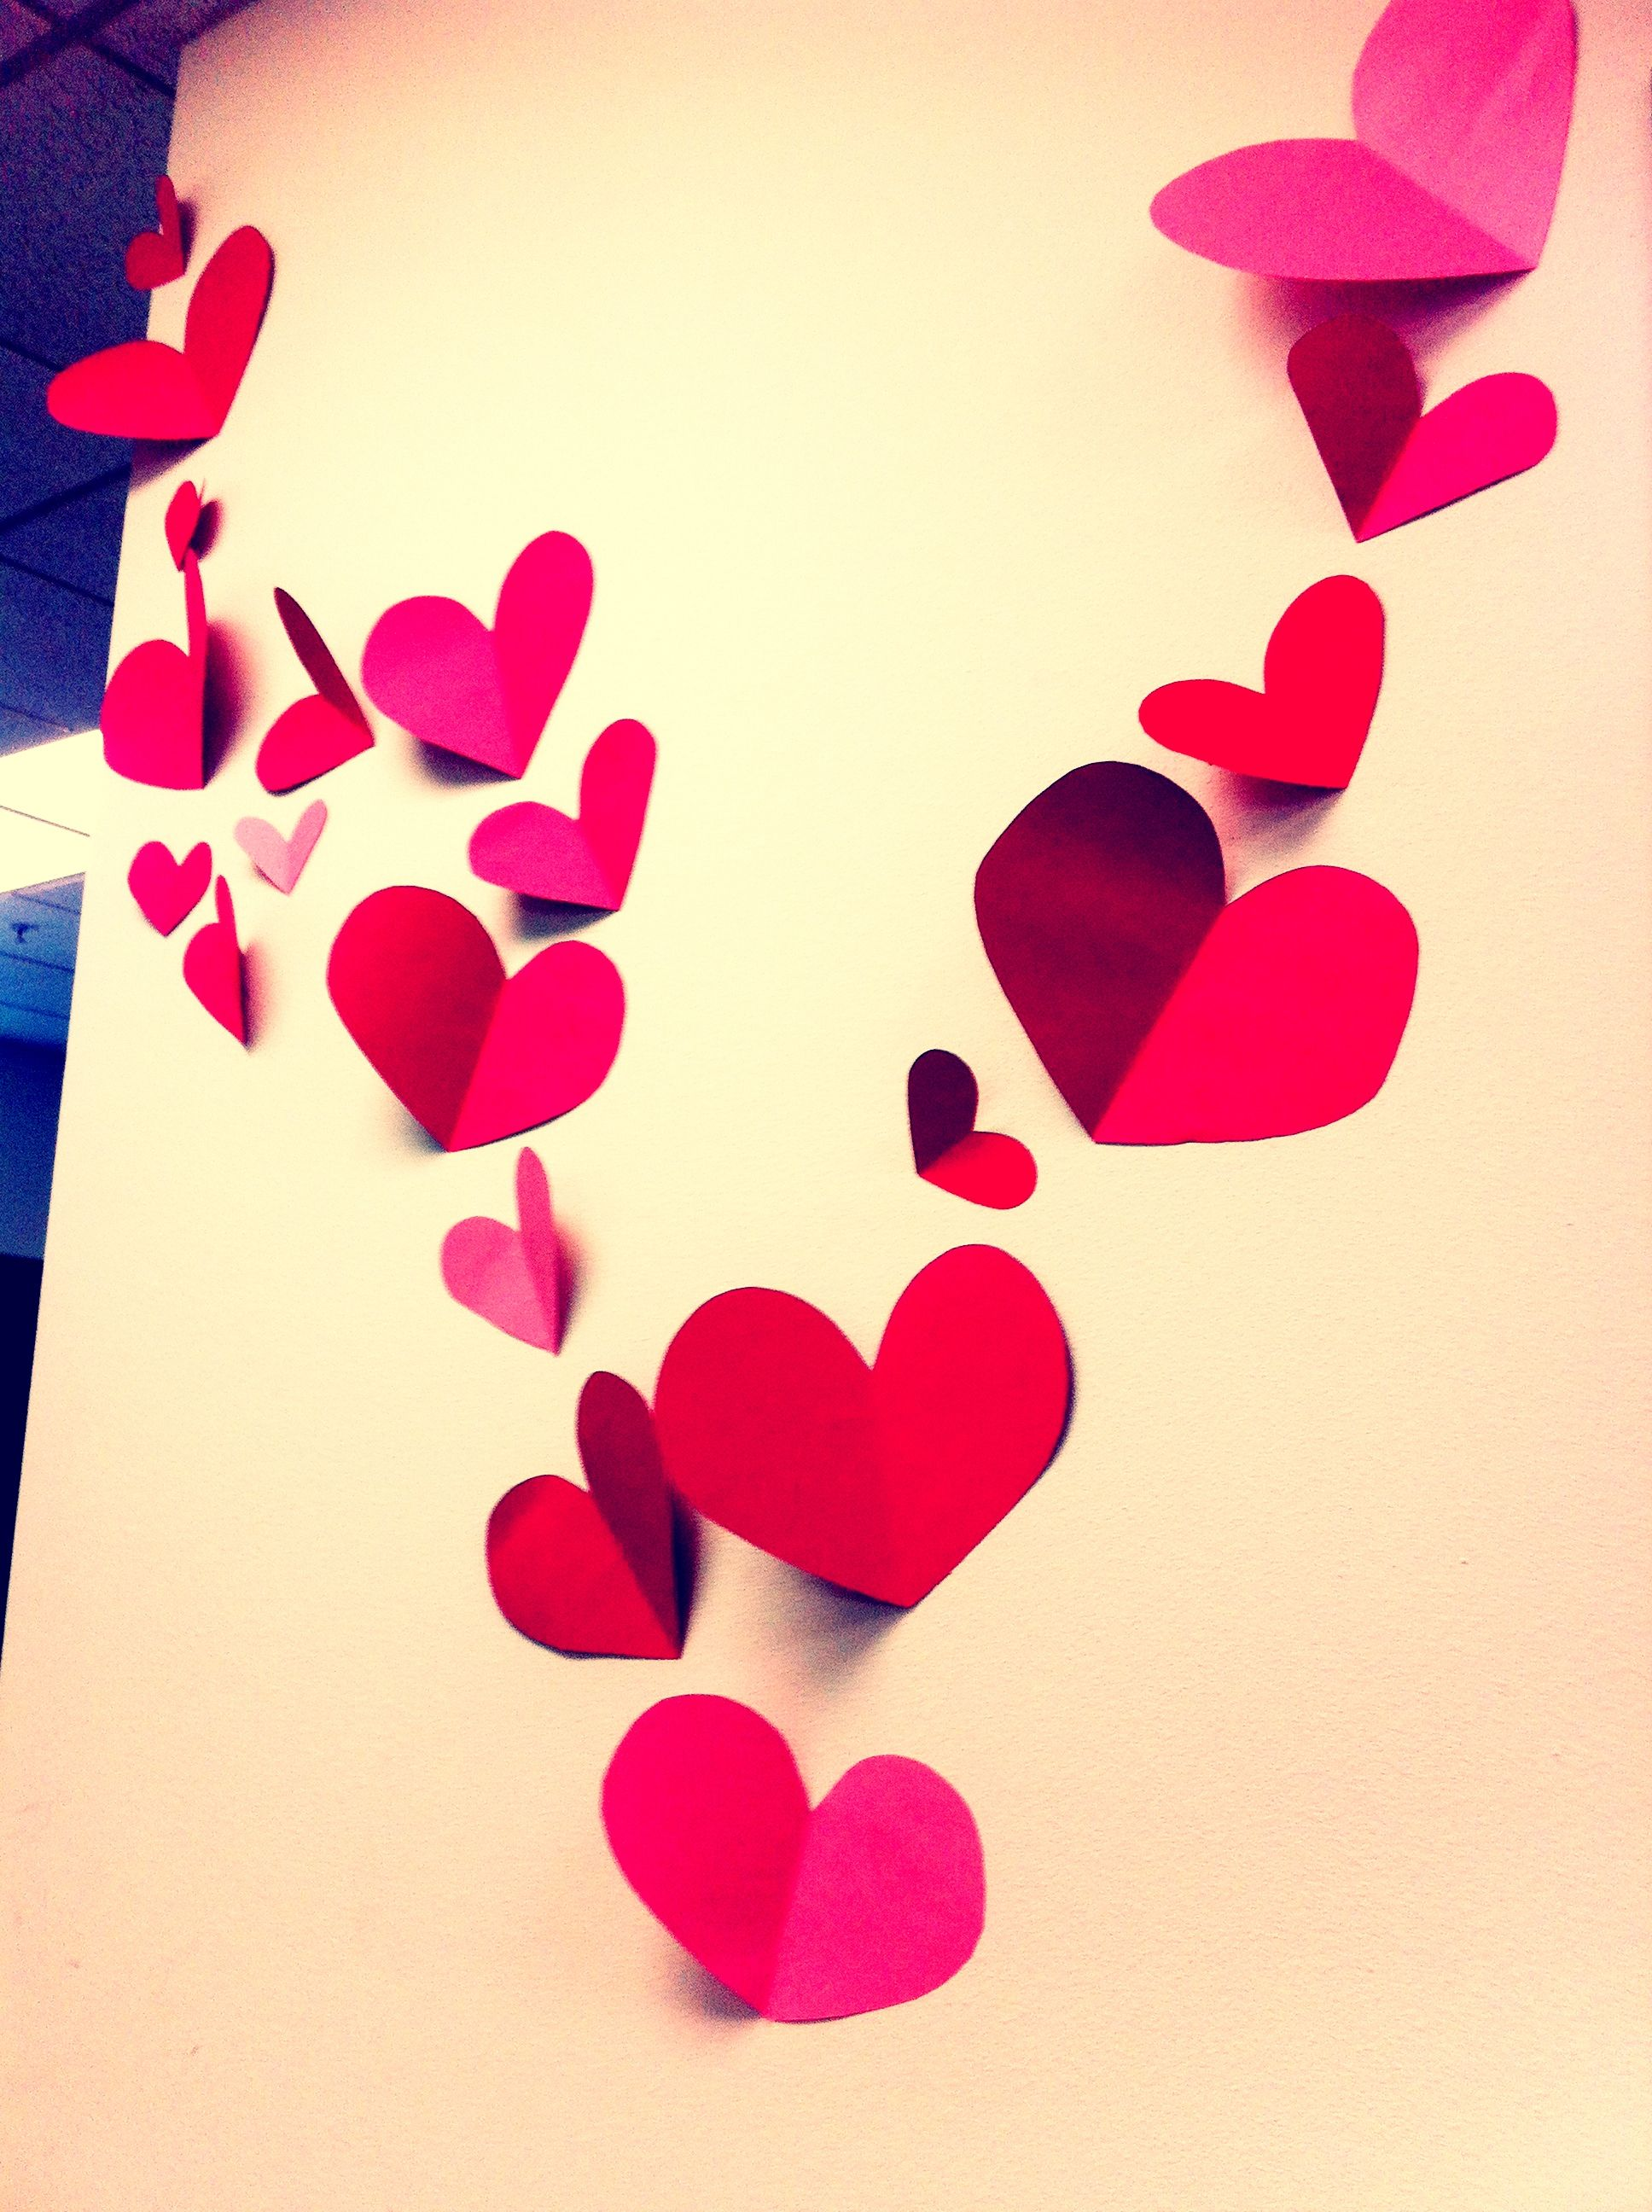 Valentines Decorations To Brighten Any Office Office Holiday